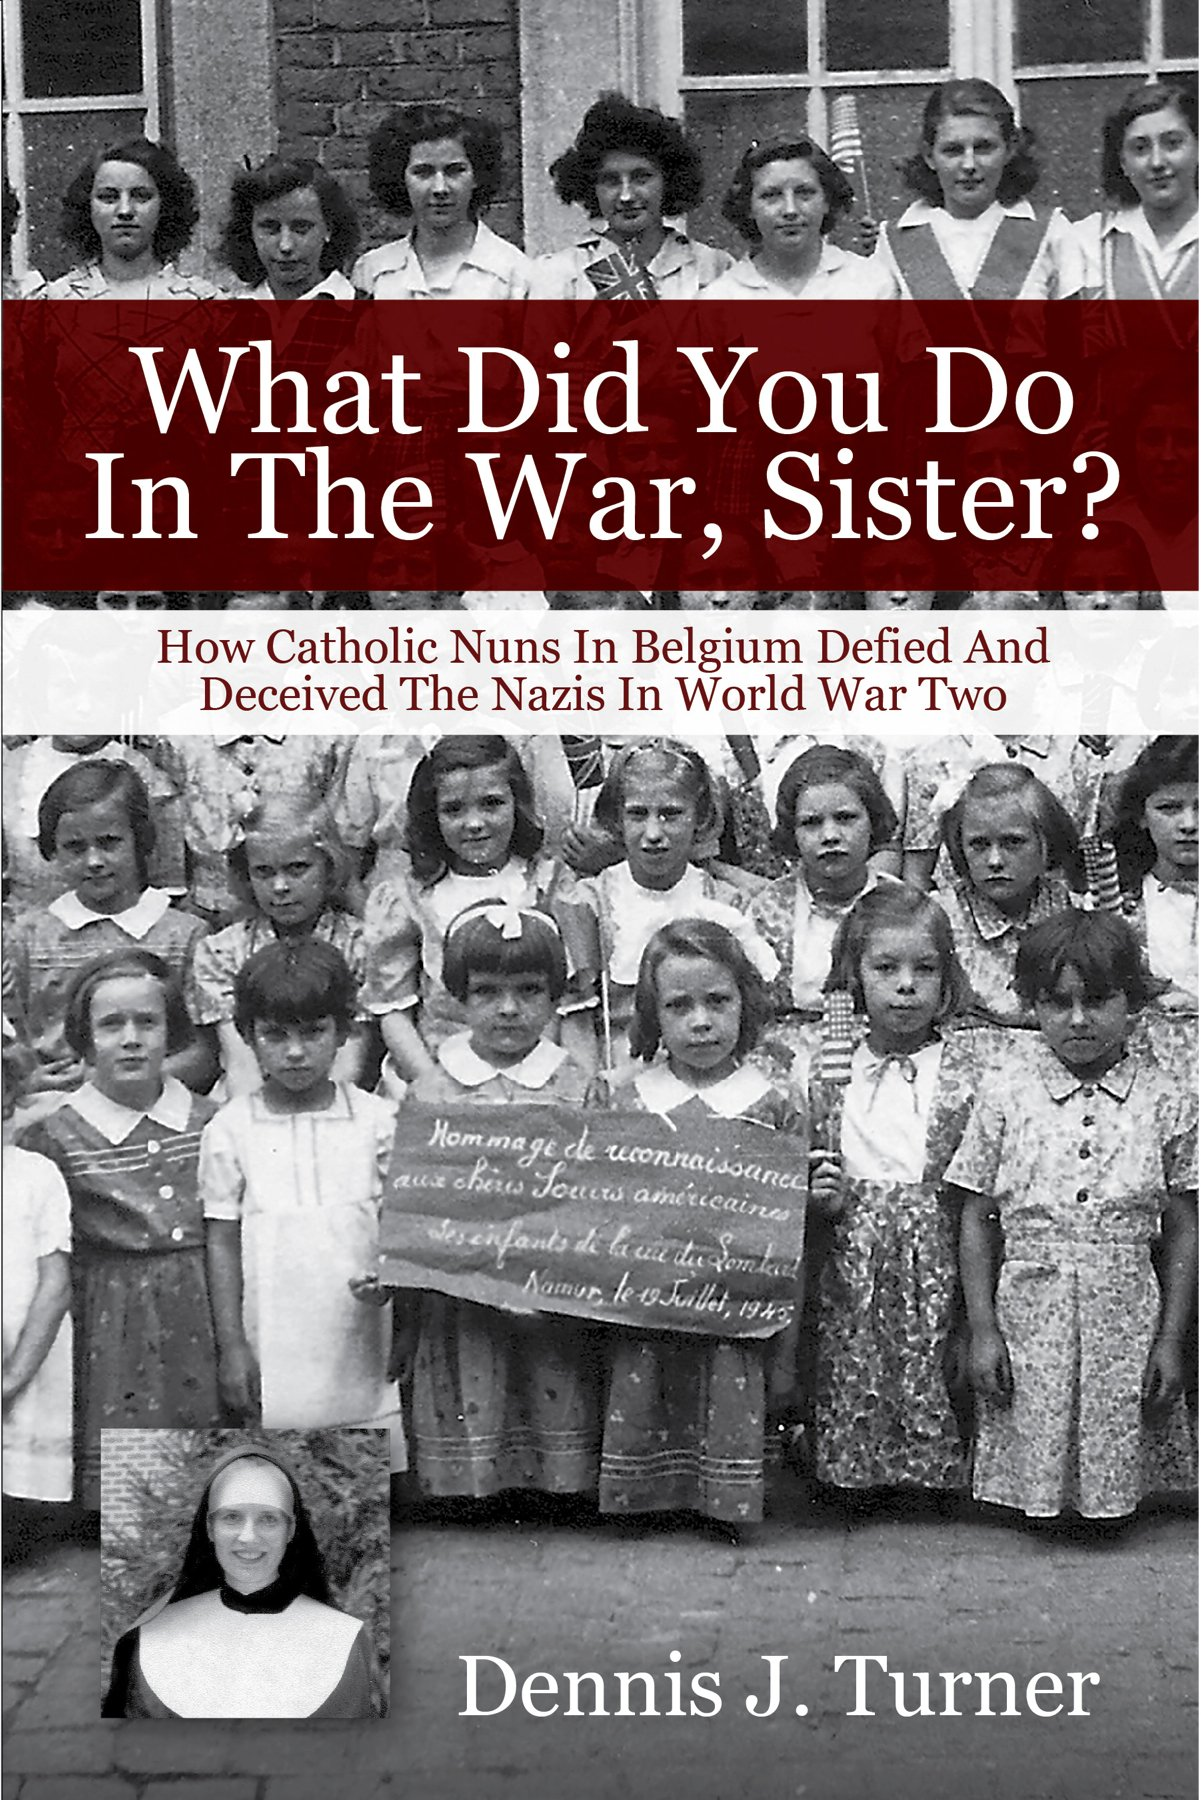 What Did You Do In The War, Sister?: Dennis J  Turner